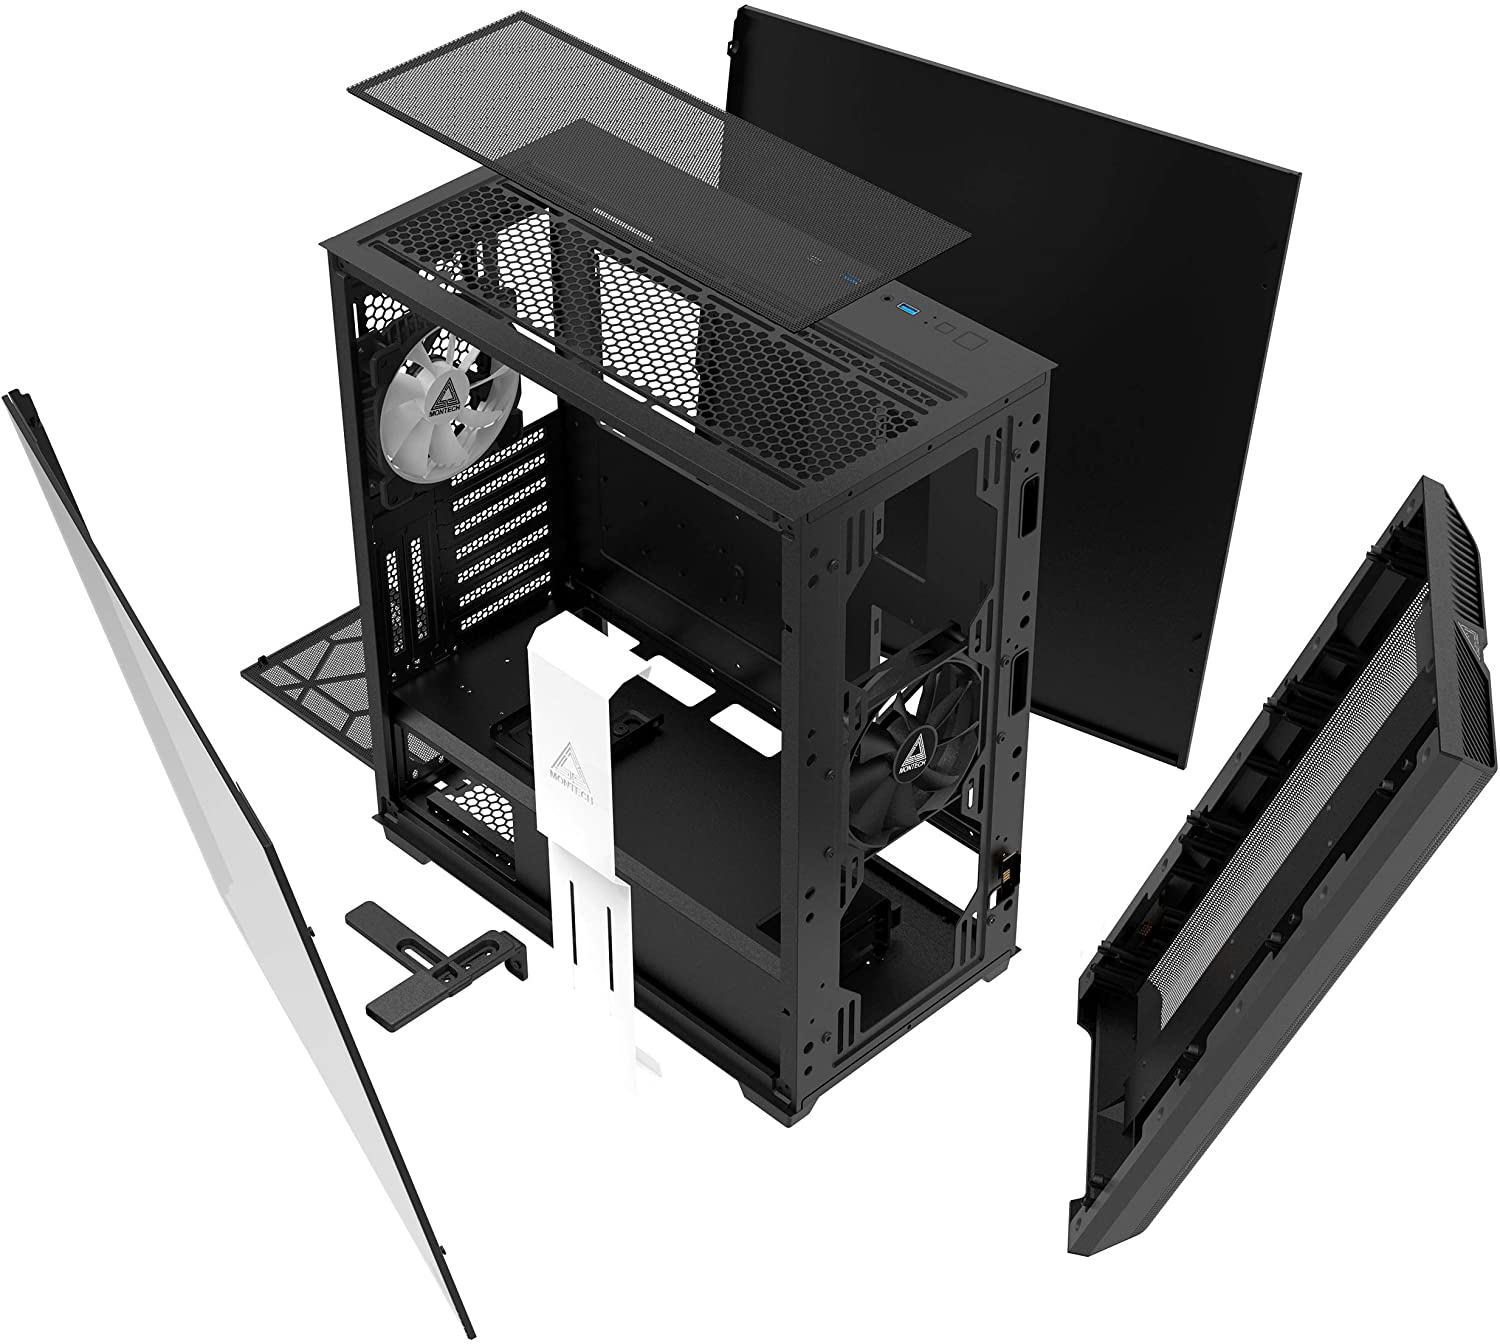 MONTECH SKY ONE HIGH-END ARGB TG ATX MID-TOWER GAMING CASE - BLACK